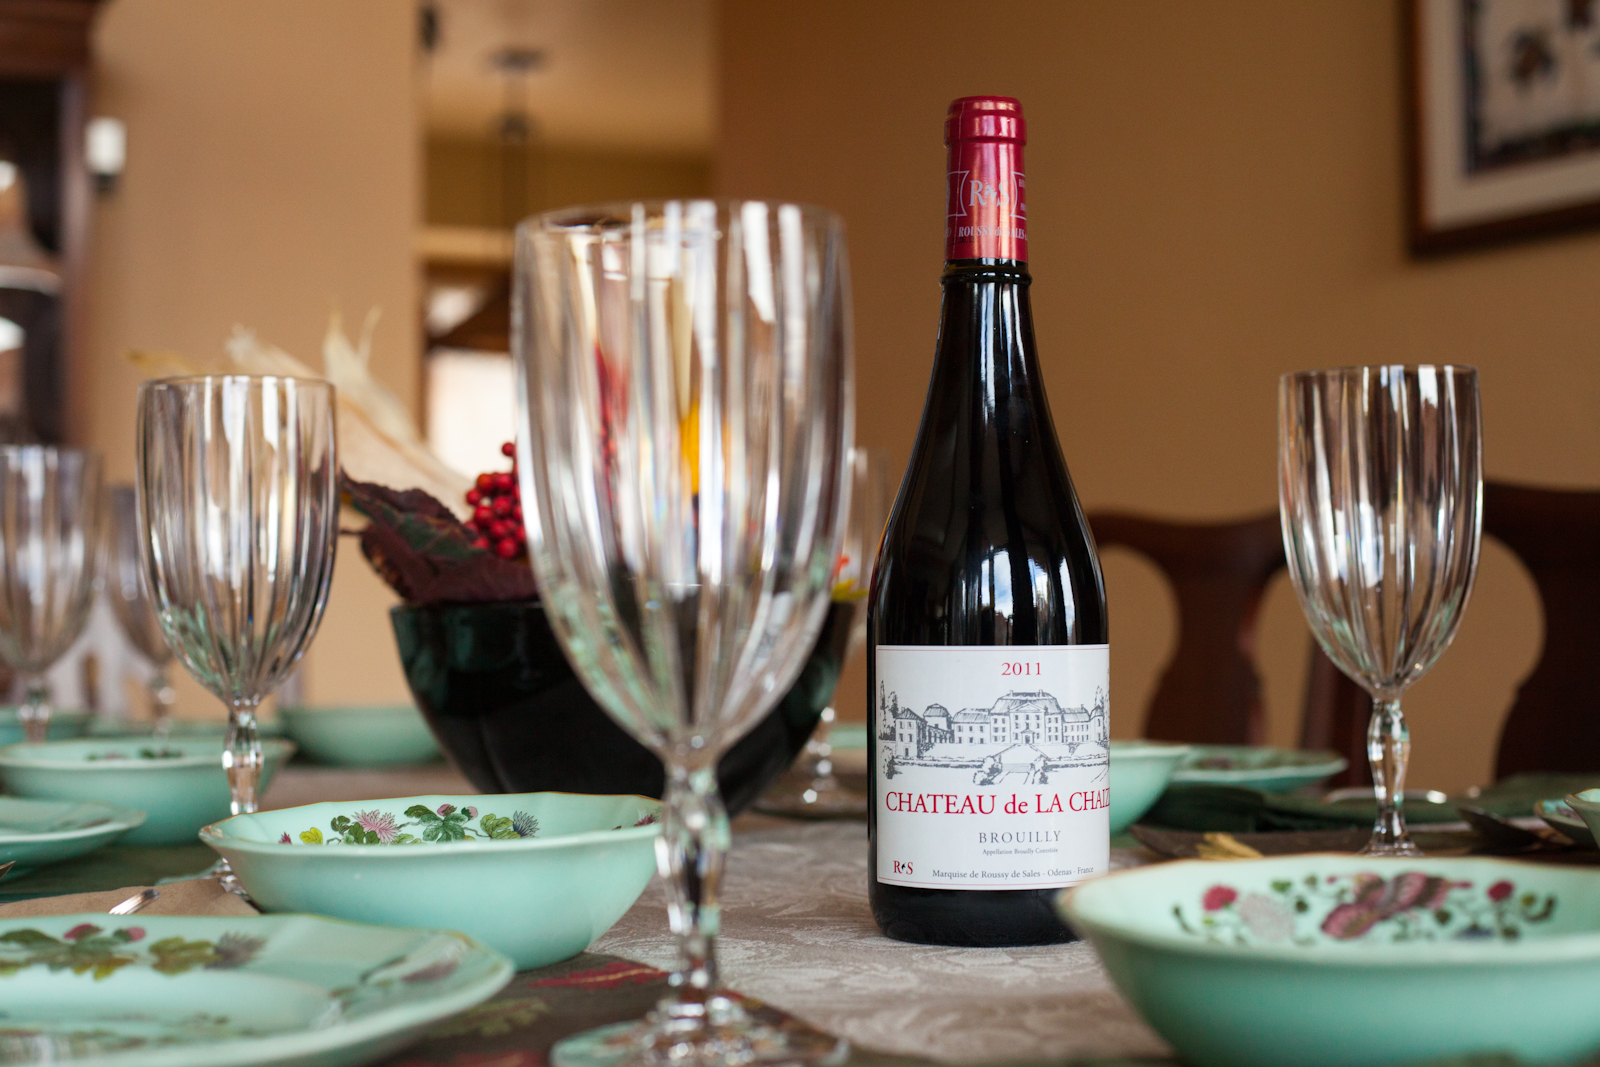 Chateau de La Chaize Brouilly red wine